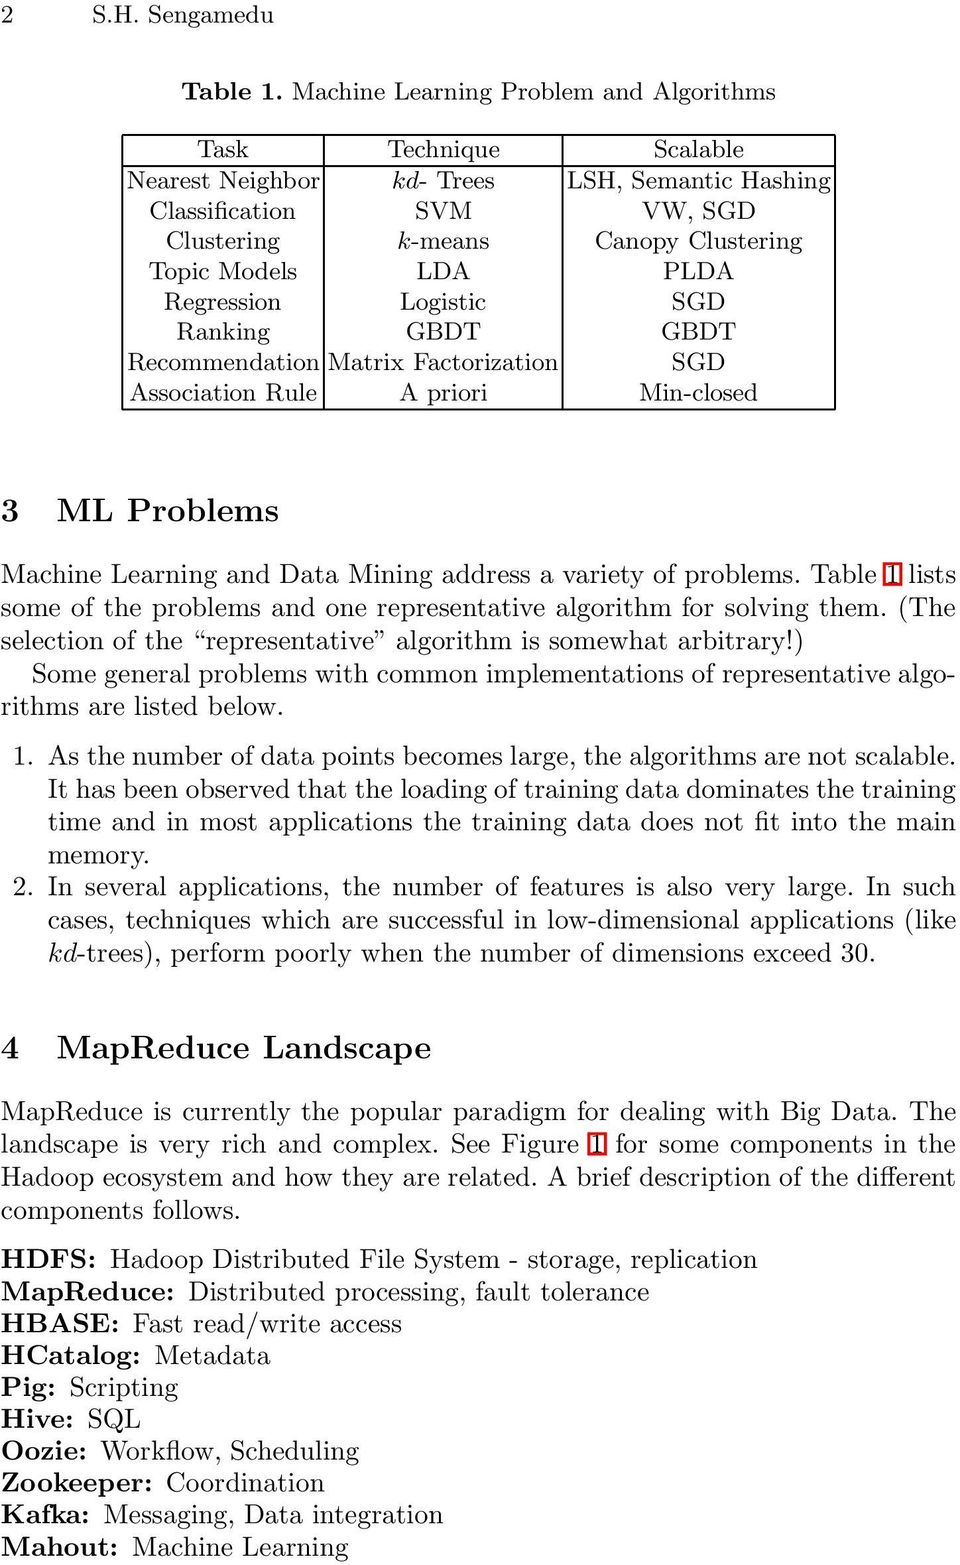 Regression Logistic SGD Ranking GBDT GBDT Recommendation Matrix Factorization SGD Association Rule Apriori Min-closed 3 ML Problems Machine Learning and Data Mining address a variety of problems.